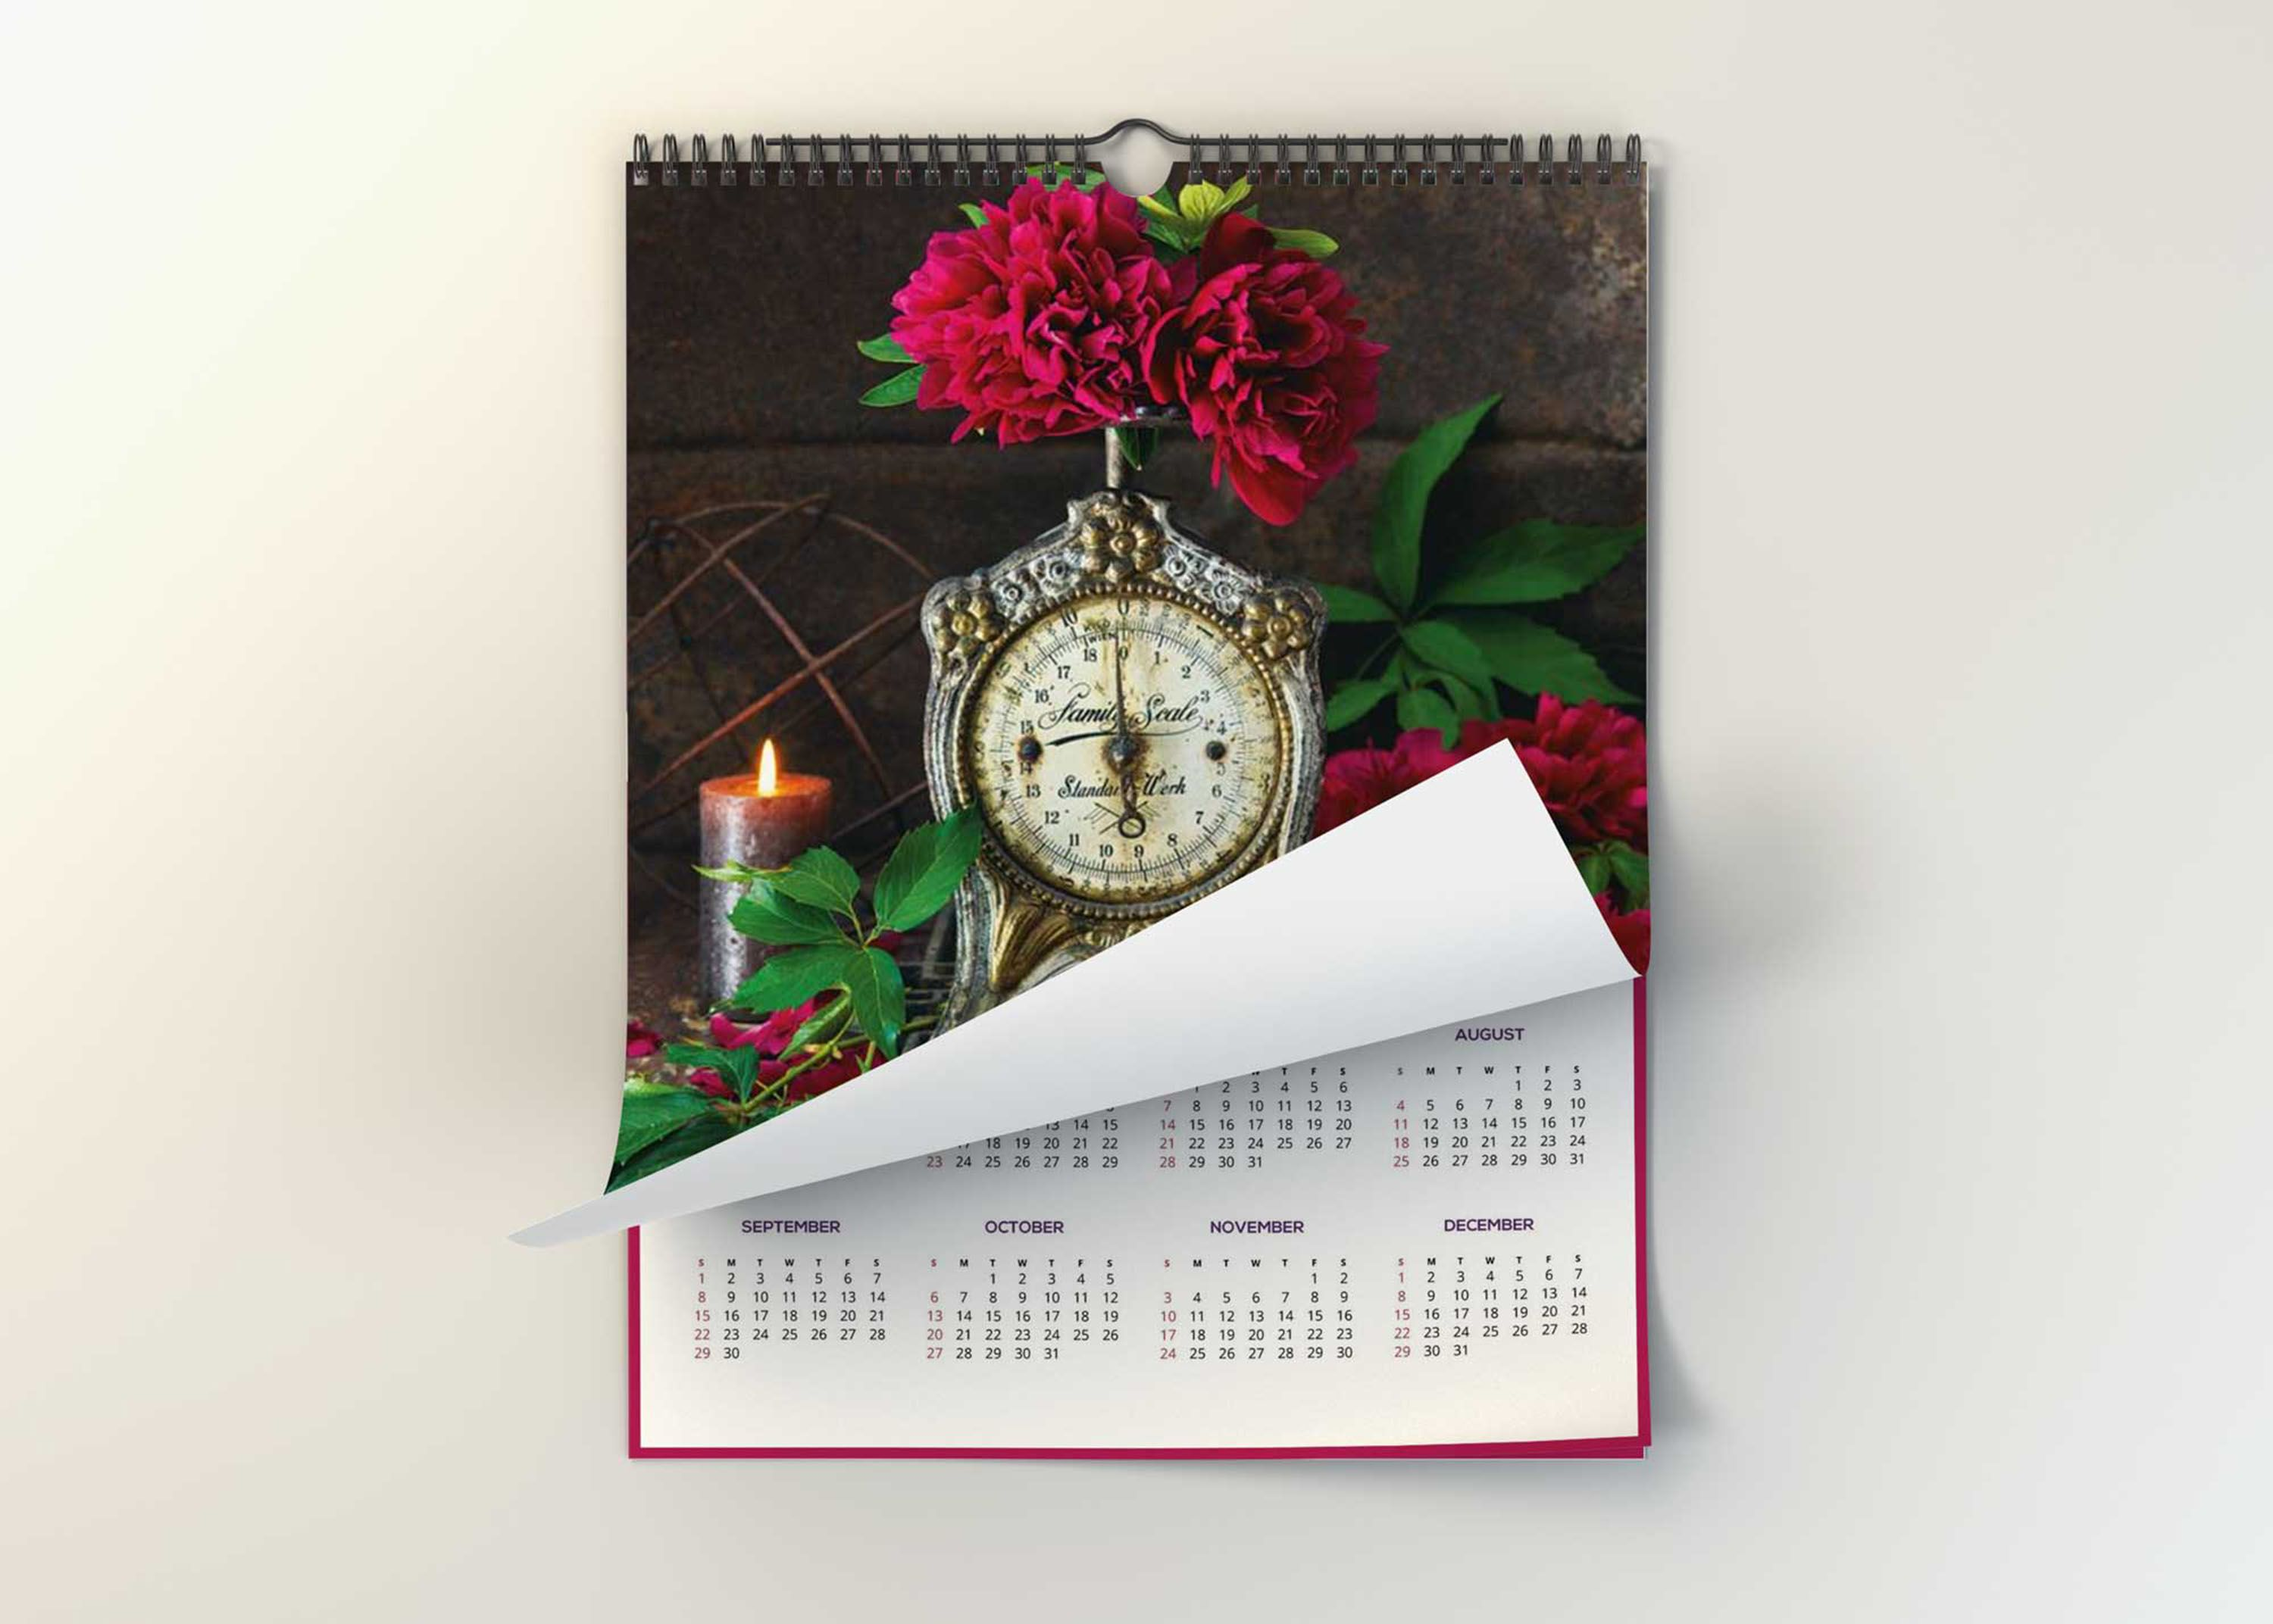 Free Wall Large Calendar Rolled Page Mockup DownloadFree